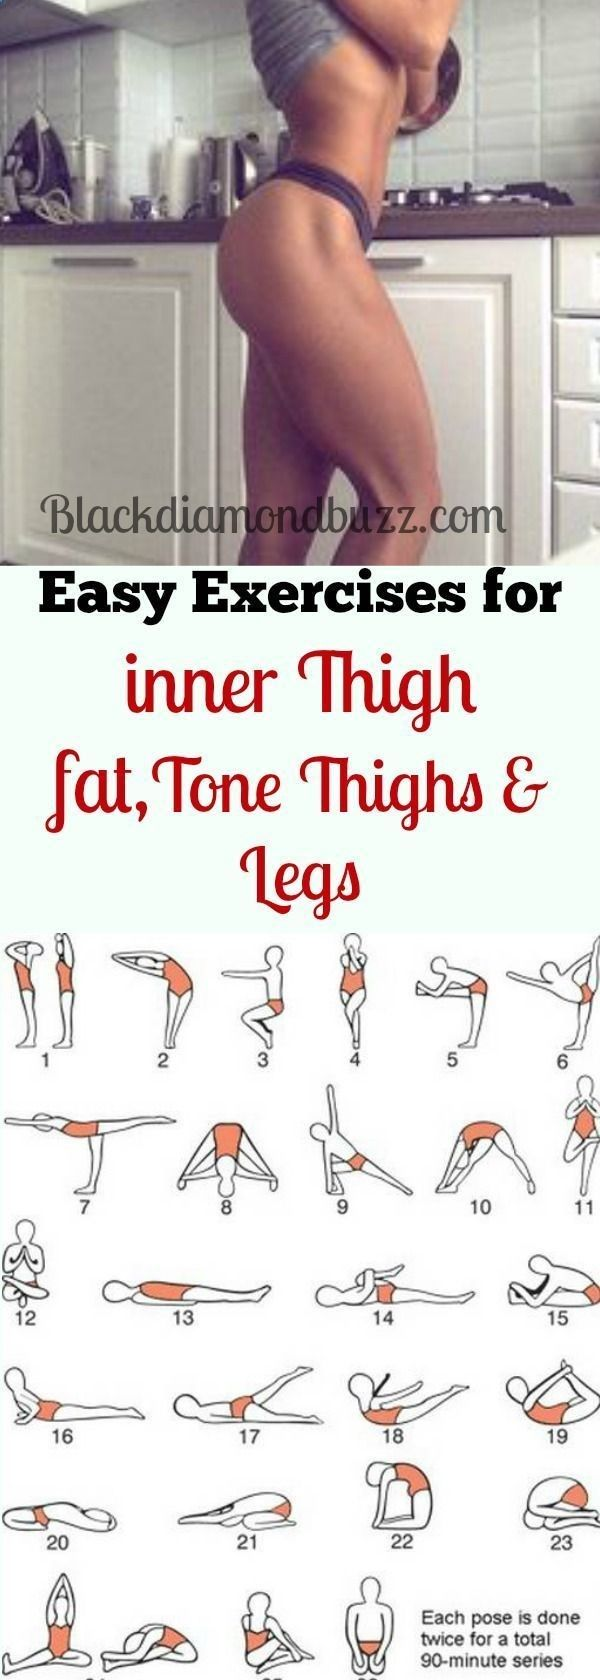 21 Minutes a Day Fat Burning - Best simple exercises to lose inner thighs fat and burn belly fat; tone thighs, legs and slimming waistline fast. It will not take more than 10 minutes for each workout every day and you are guaranteed of losing 10 pound in 7 days Using this 21-Minute Method, You CAN Eat Carbs, Enjoy Your Favorite Foods, and STILL Burn Away A Bit Of Belly Fat Each and Every Day